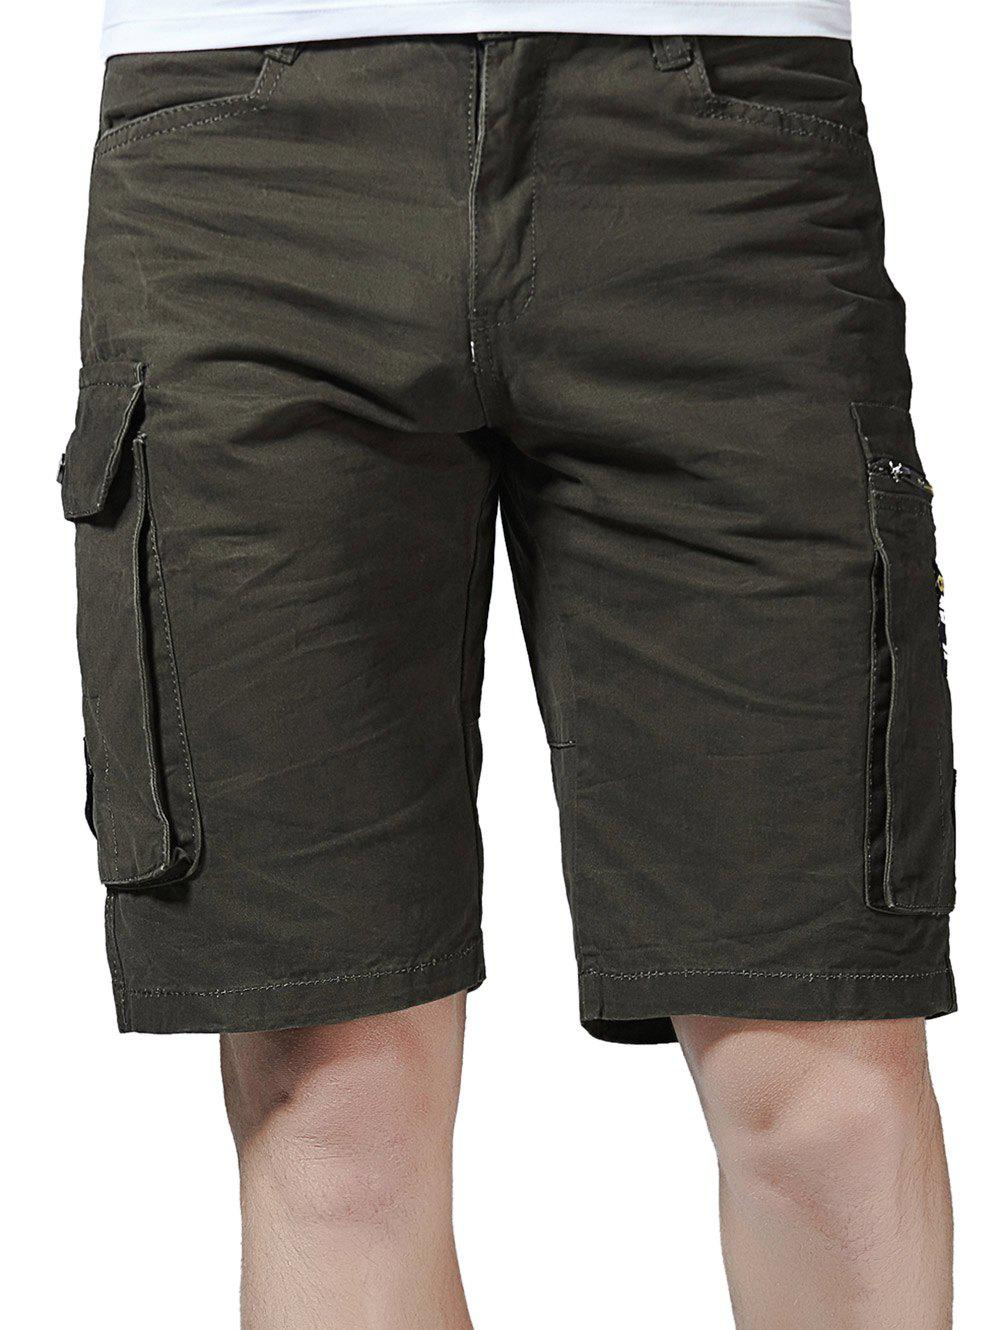 Fashion Flap Pockets Letter Applique Zipper Fly Cargo Shorts